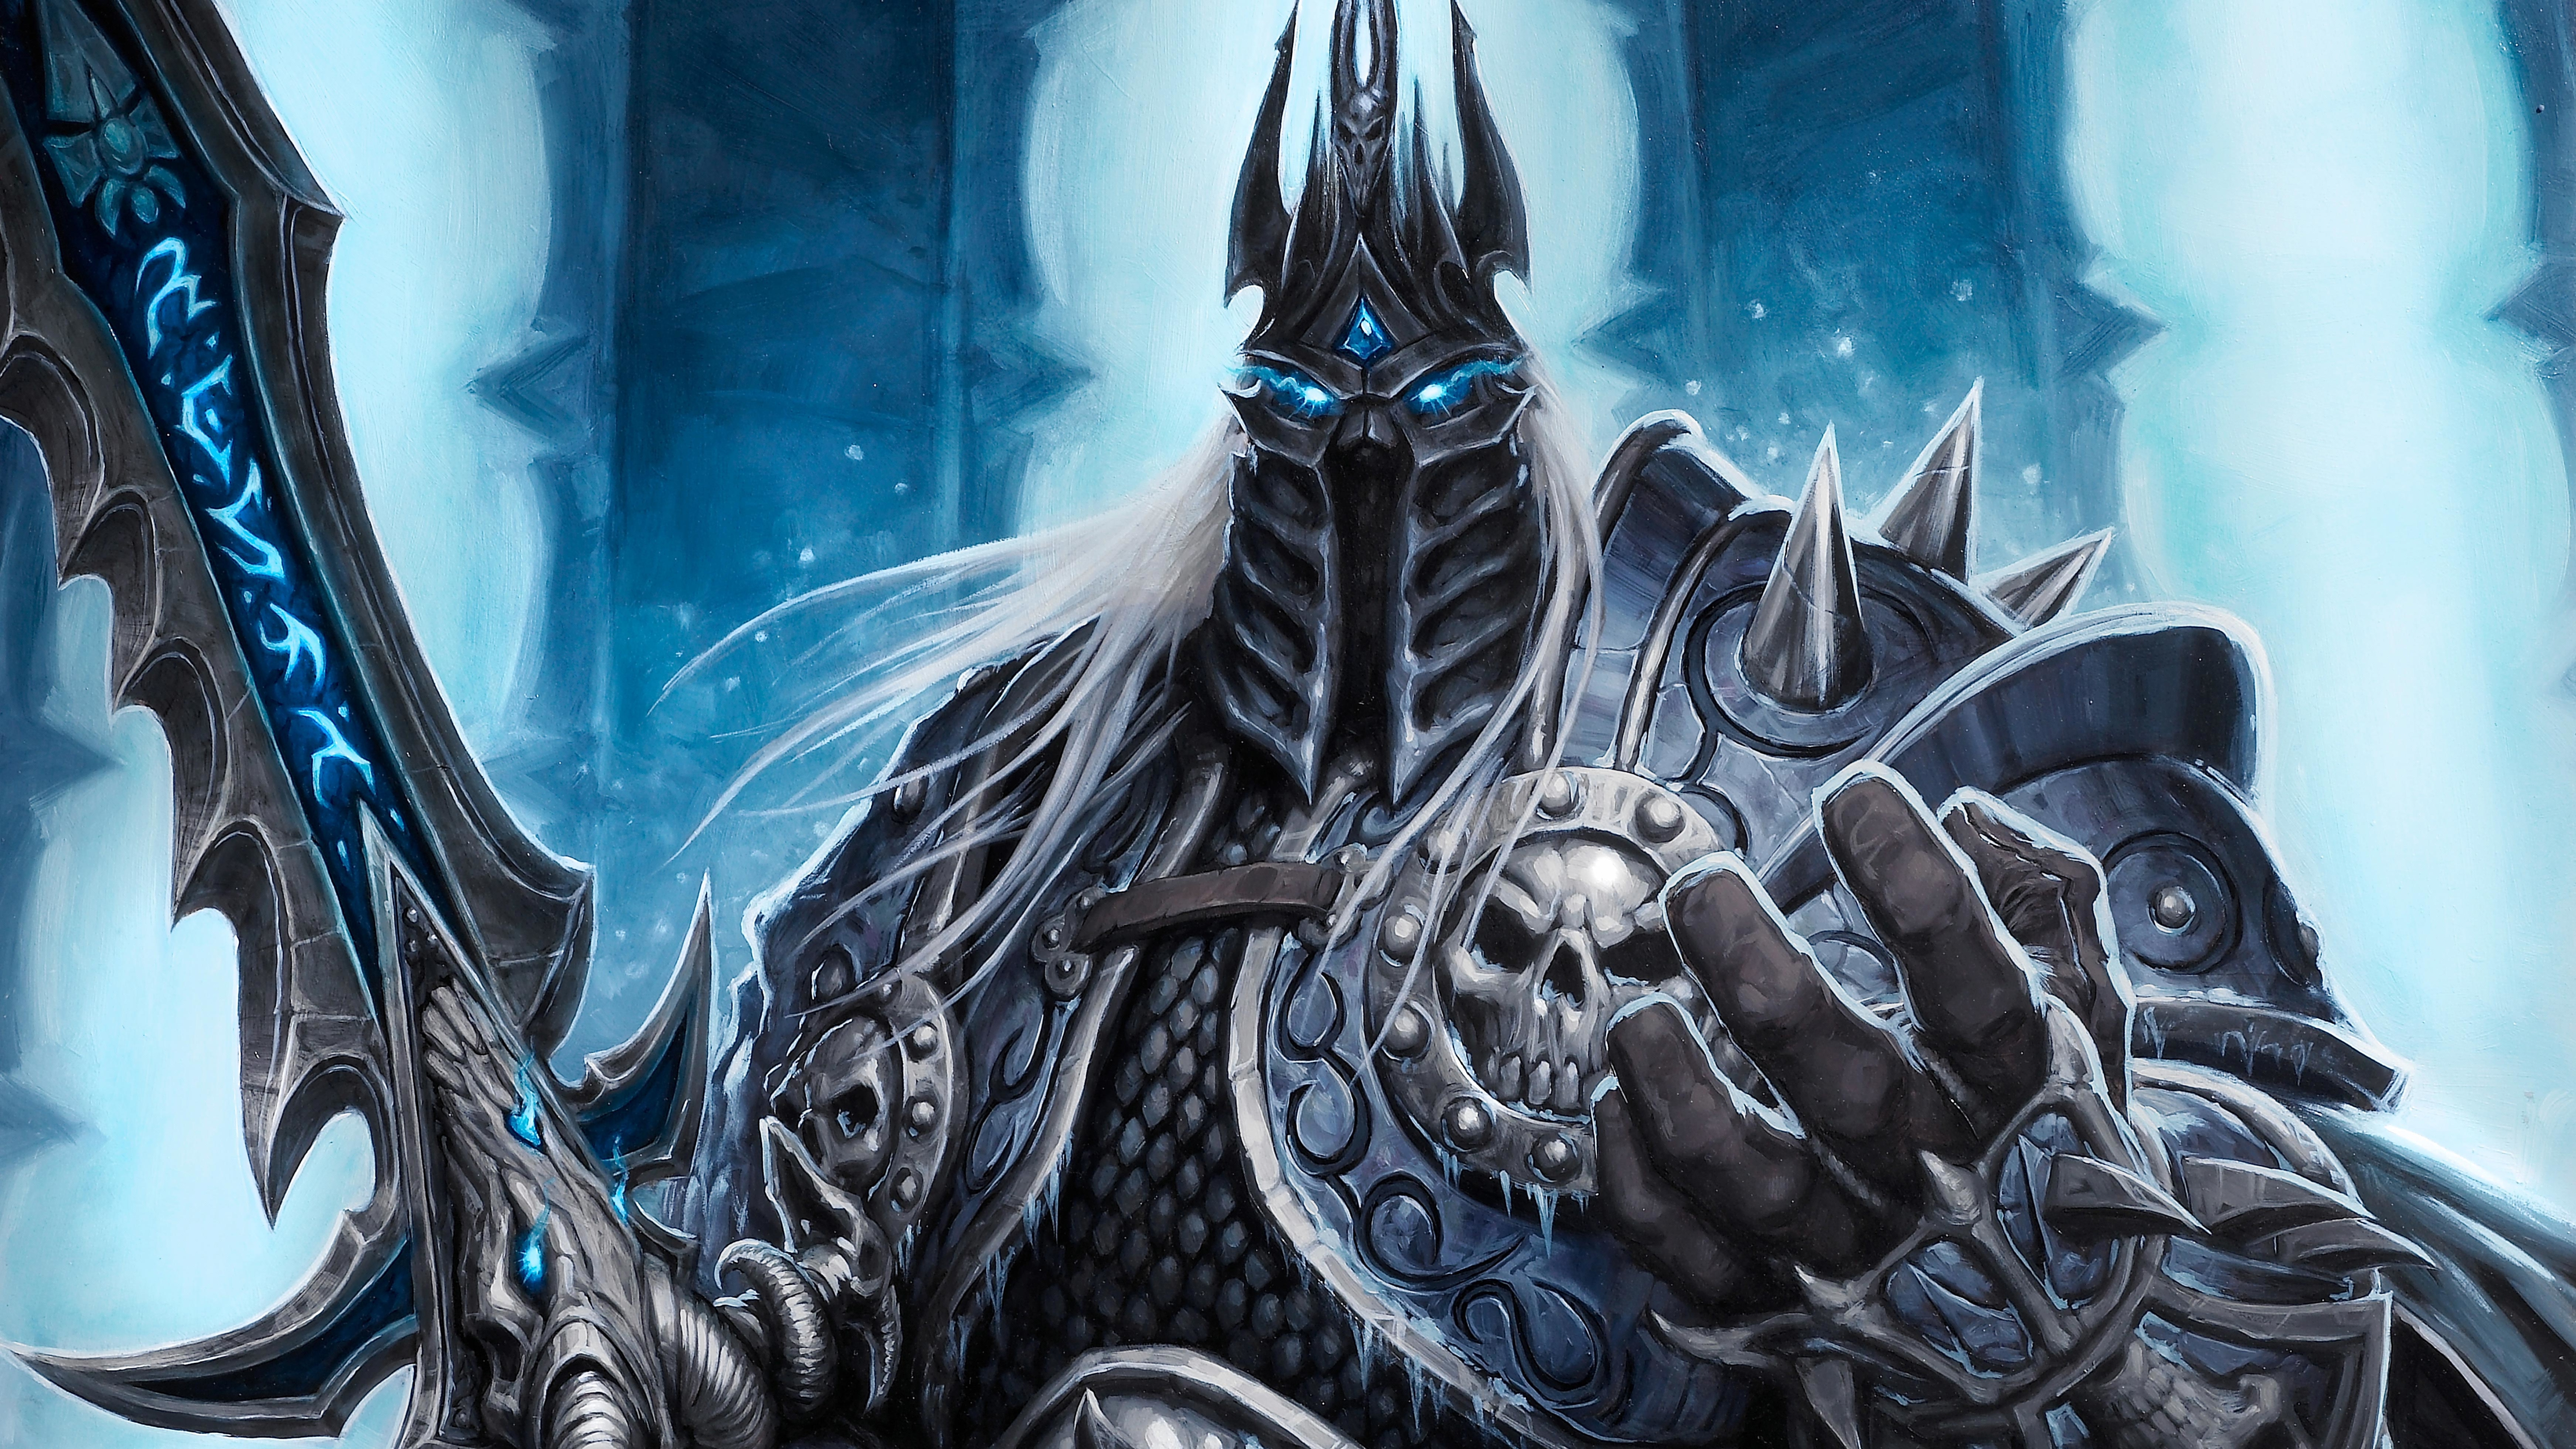 7680x4320 Lich King World Of Warcraft 8k Wallpaper Hd Games 4k